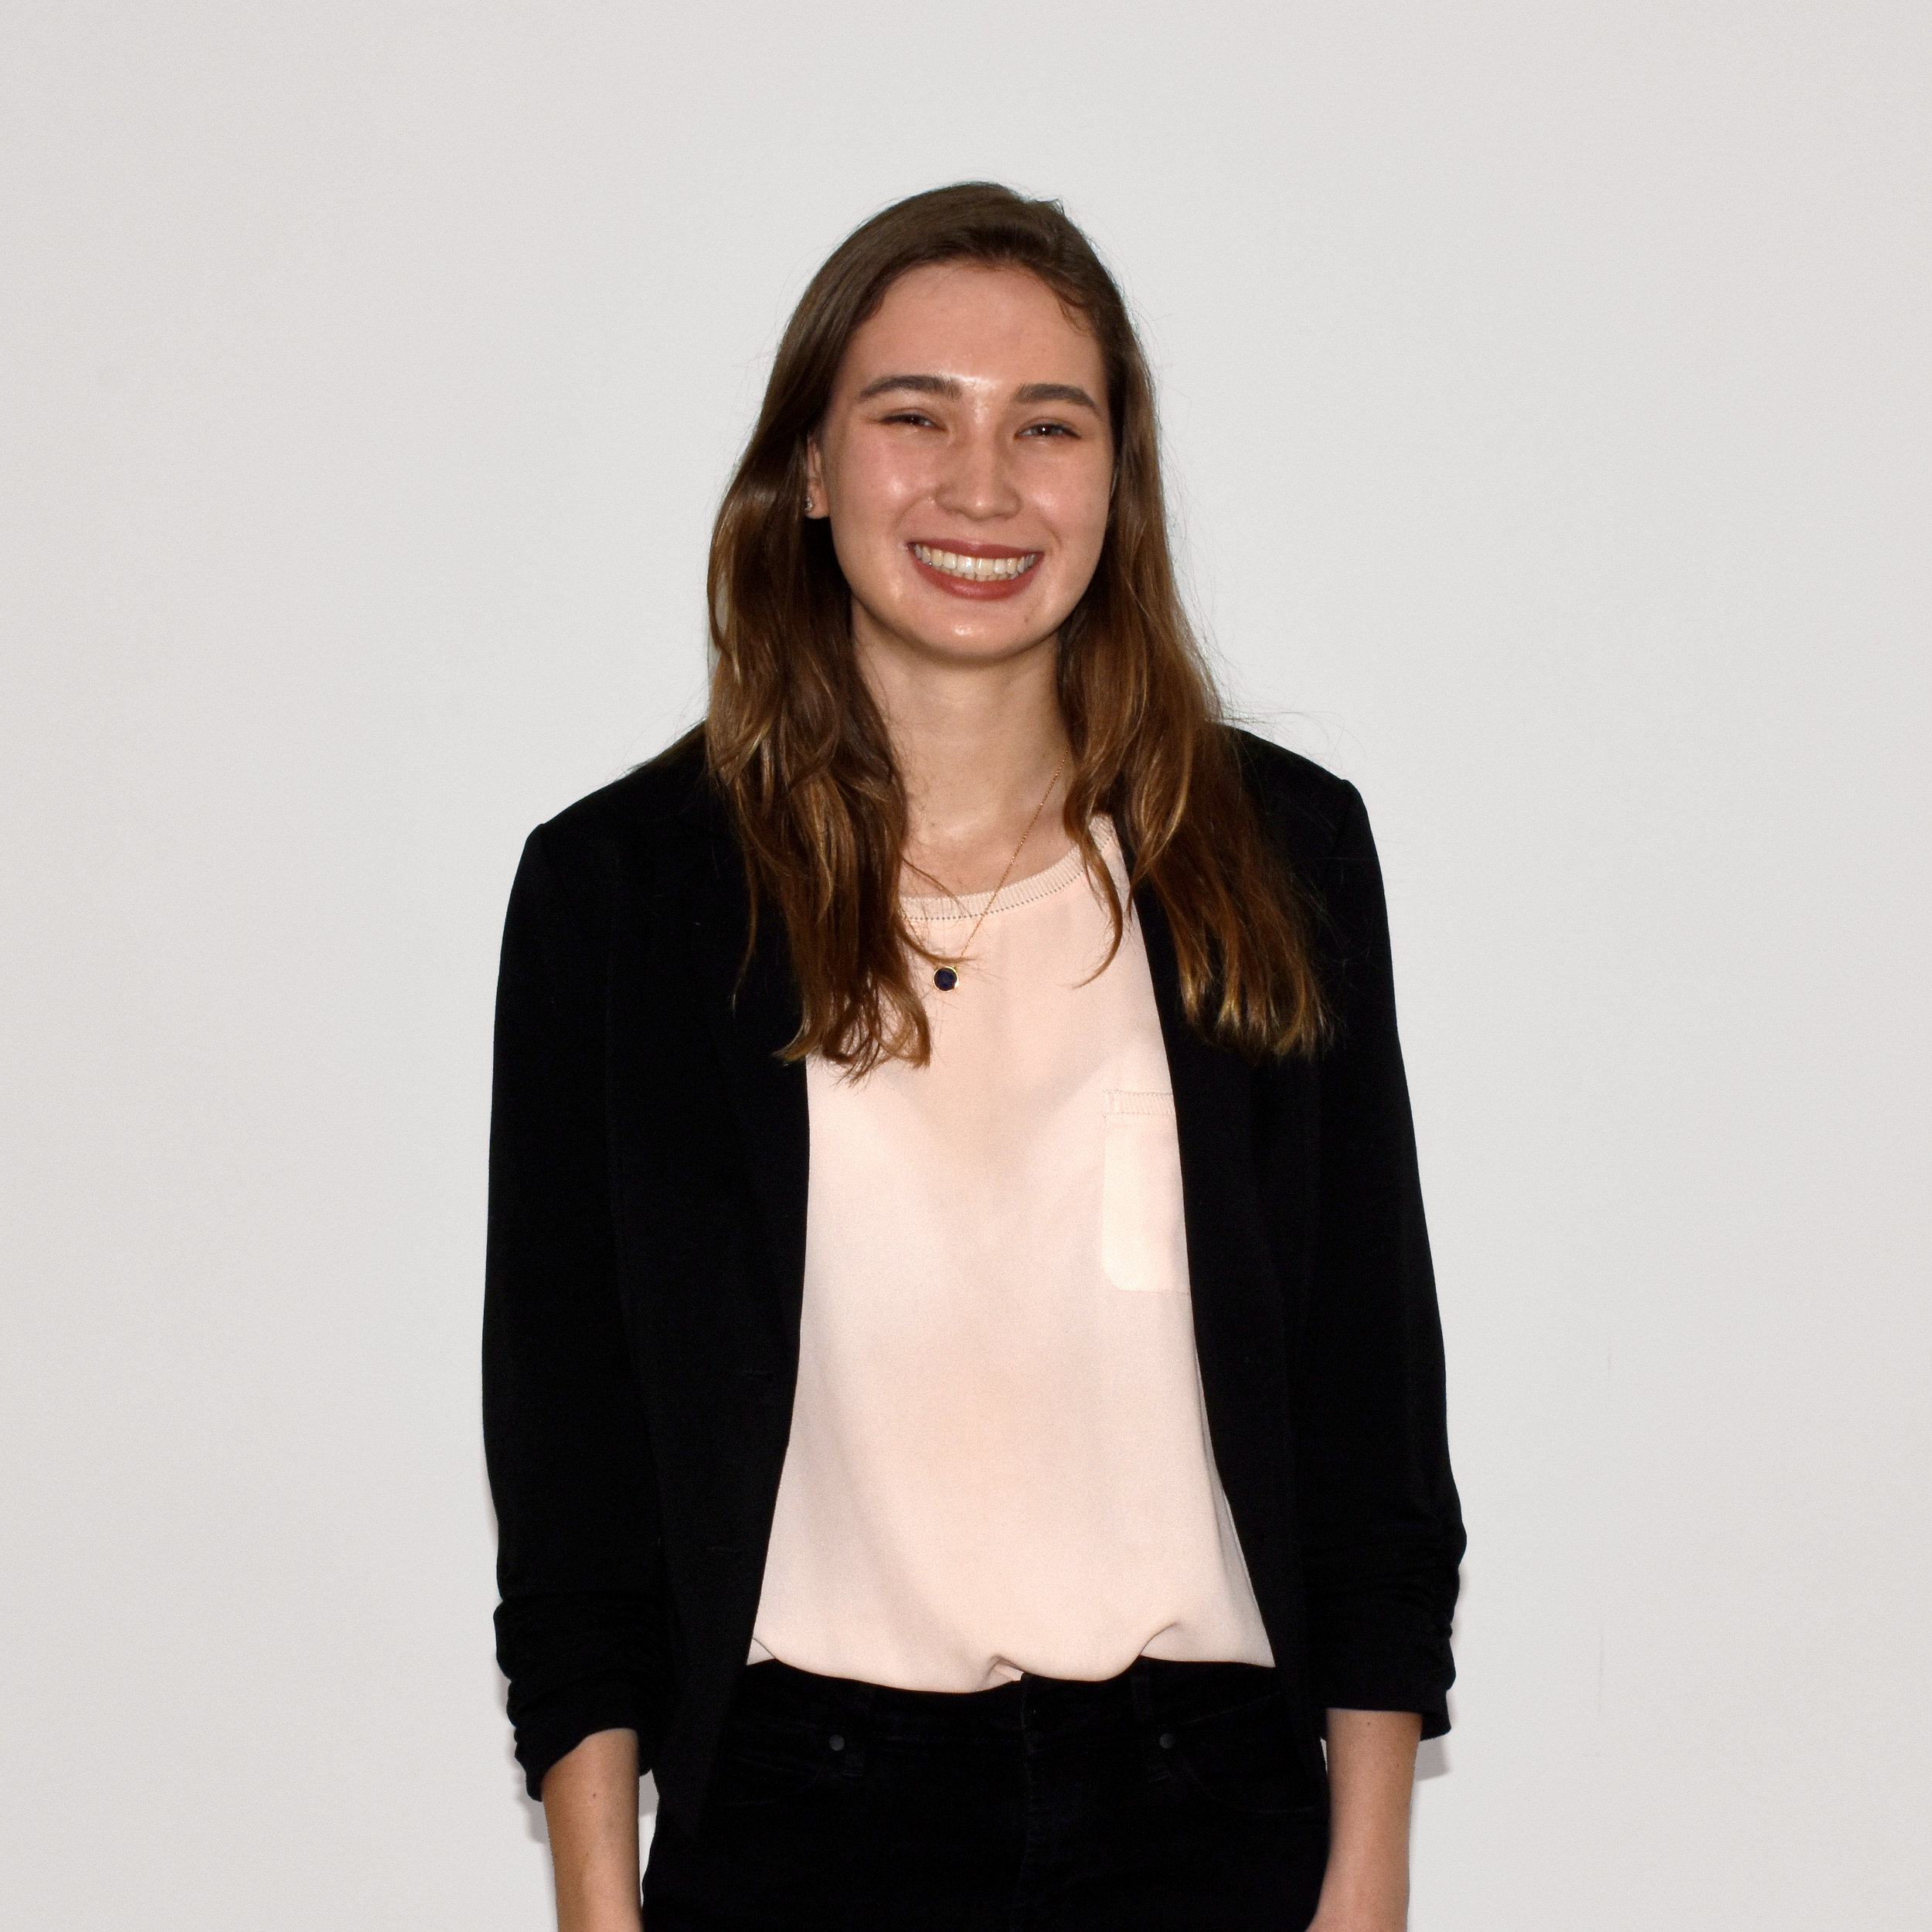 Juliette Raymond  Industrial and Labor Relations, 2021  I joined CSC because I'm interested in the intersection of business and sustainable design, and I believe that CSC will give me the opportunity to see how these concepts interact with each other.